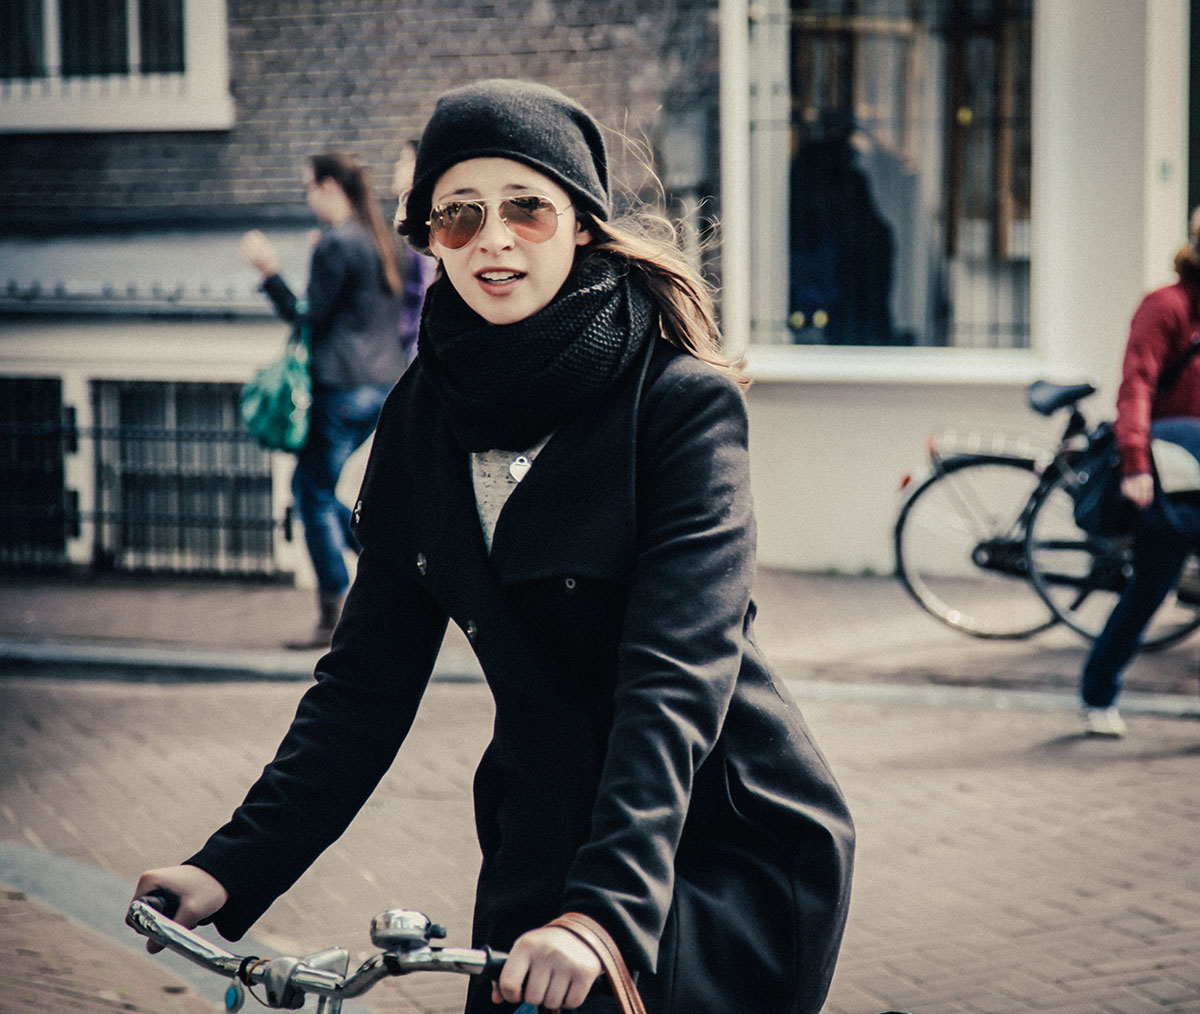 Momentary Capture | Bicycle Chic Amsterdam